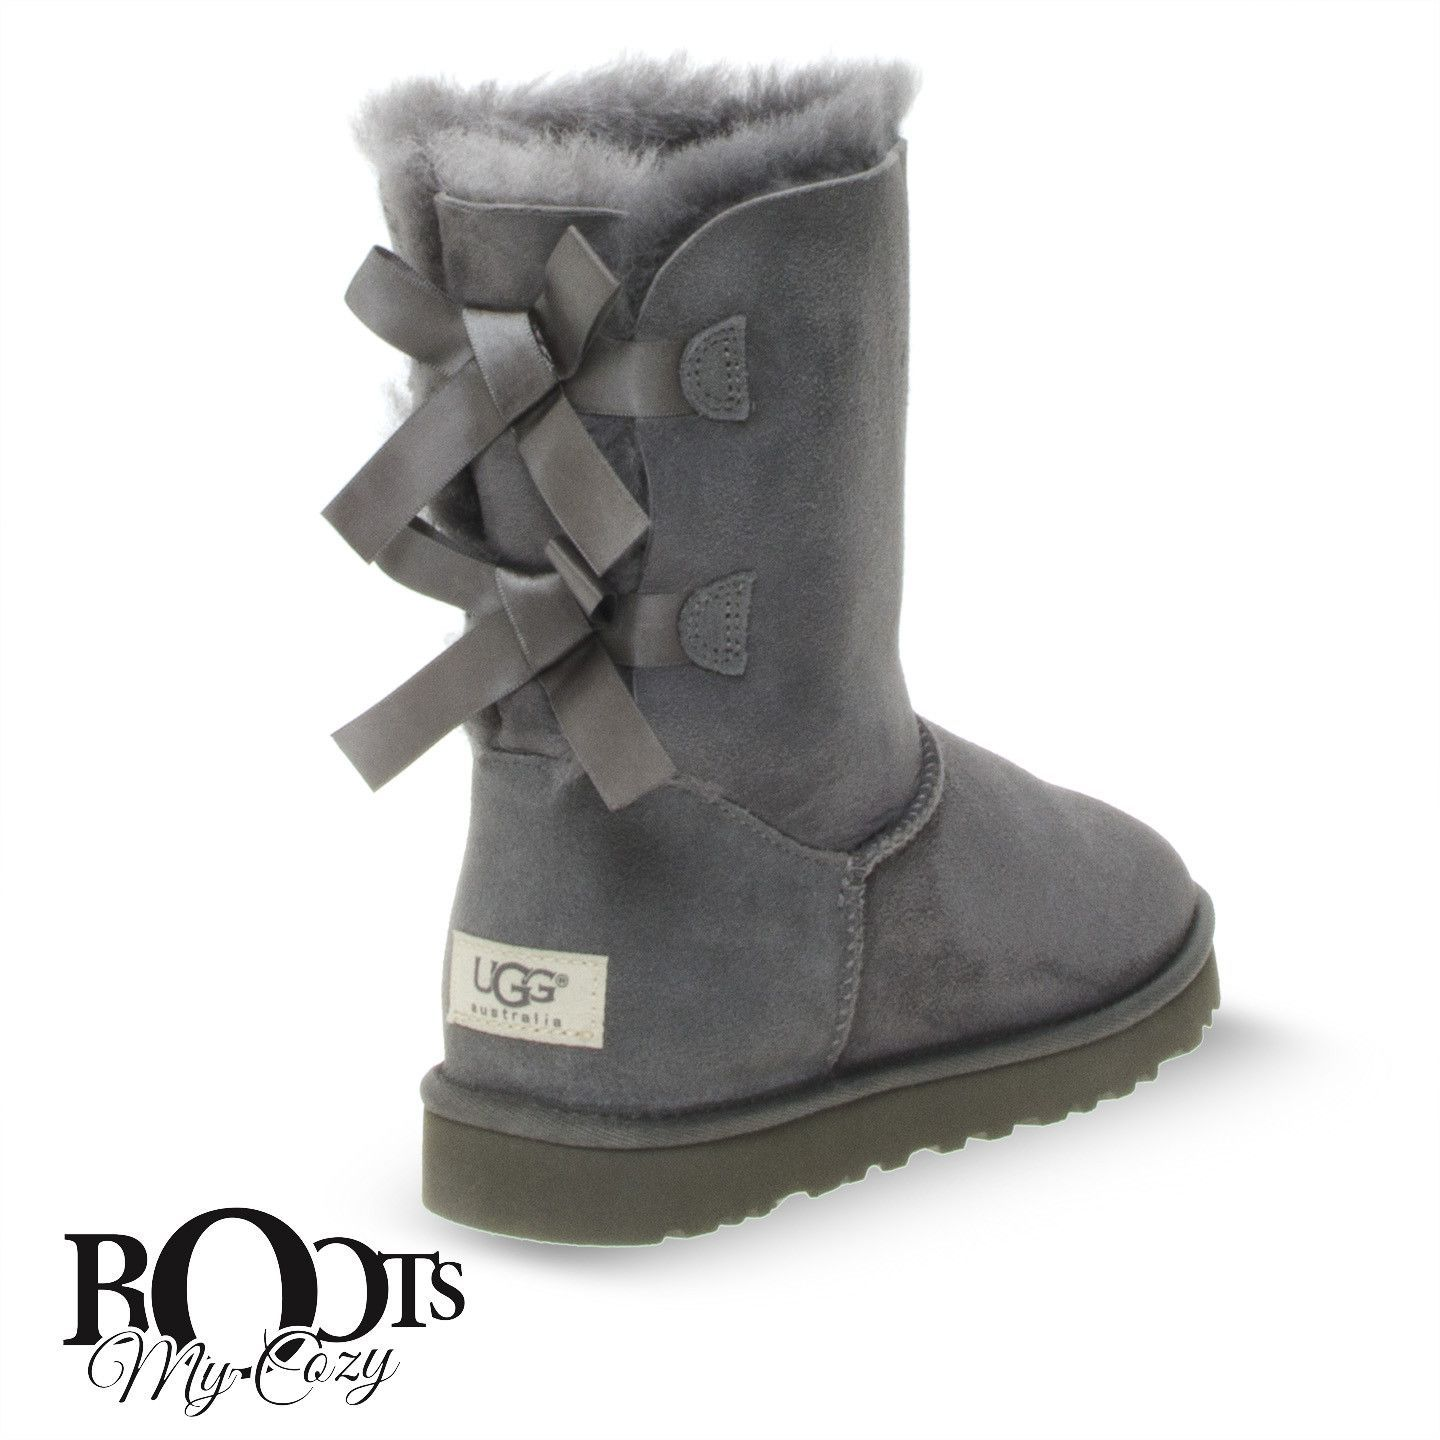 UGG BAILEY BOW GREY BOOTS - WOMEN'S